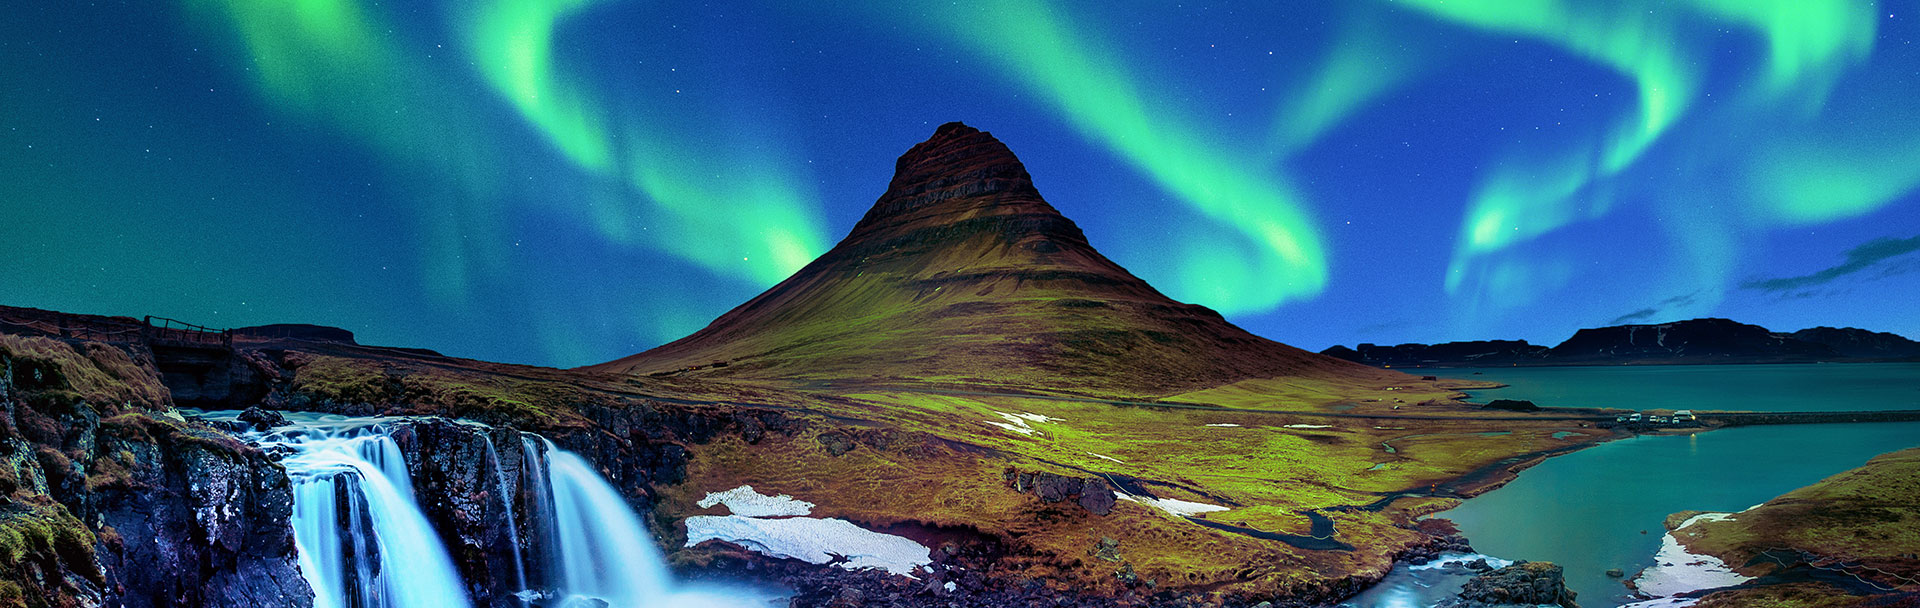 Gaze at the electric Northern Lights